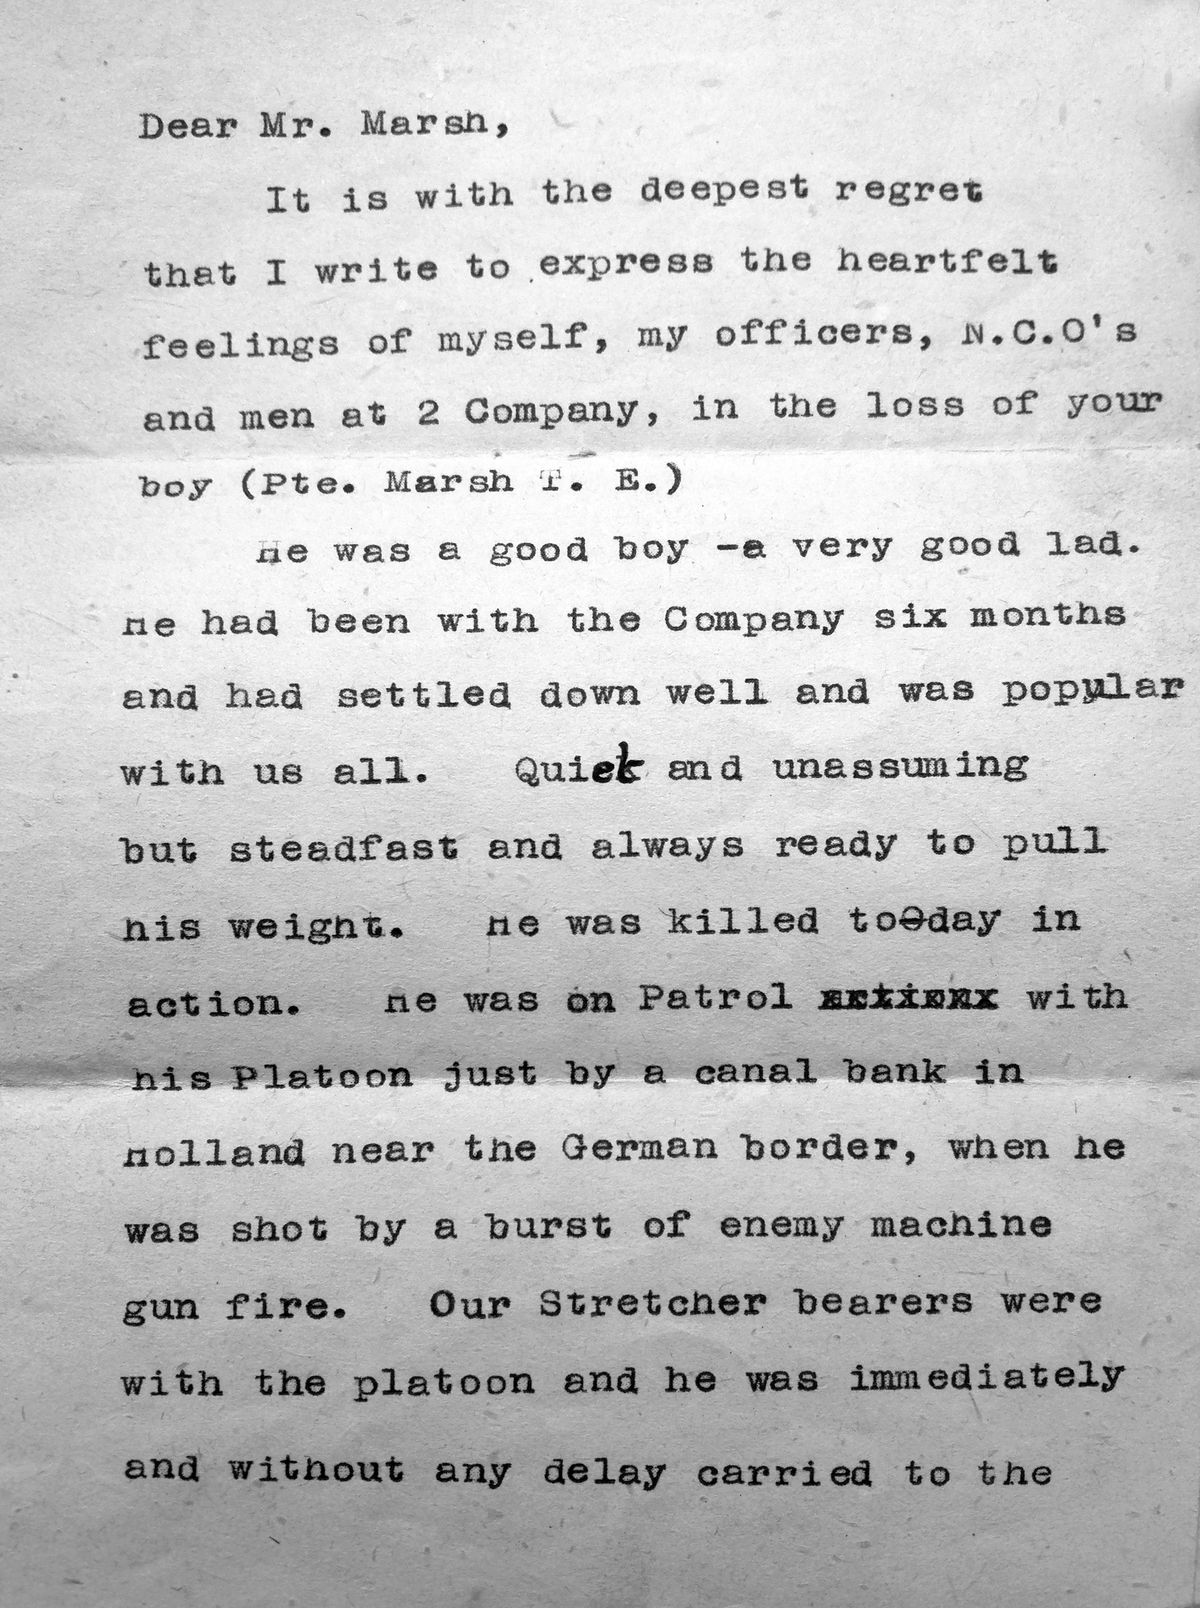 The letter home giving the terrible news.